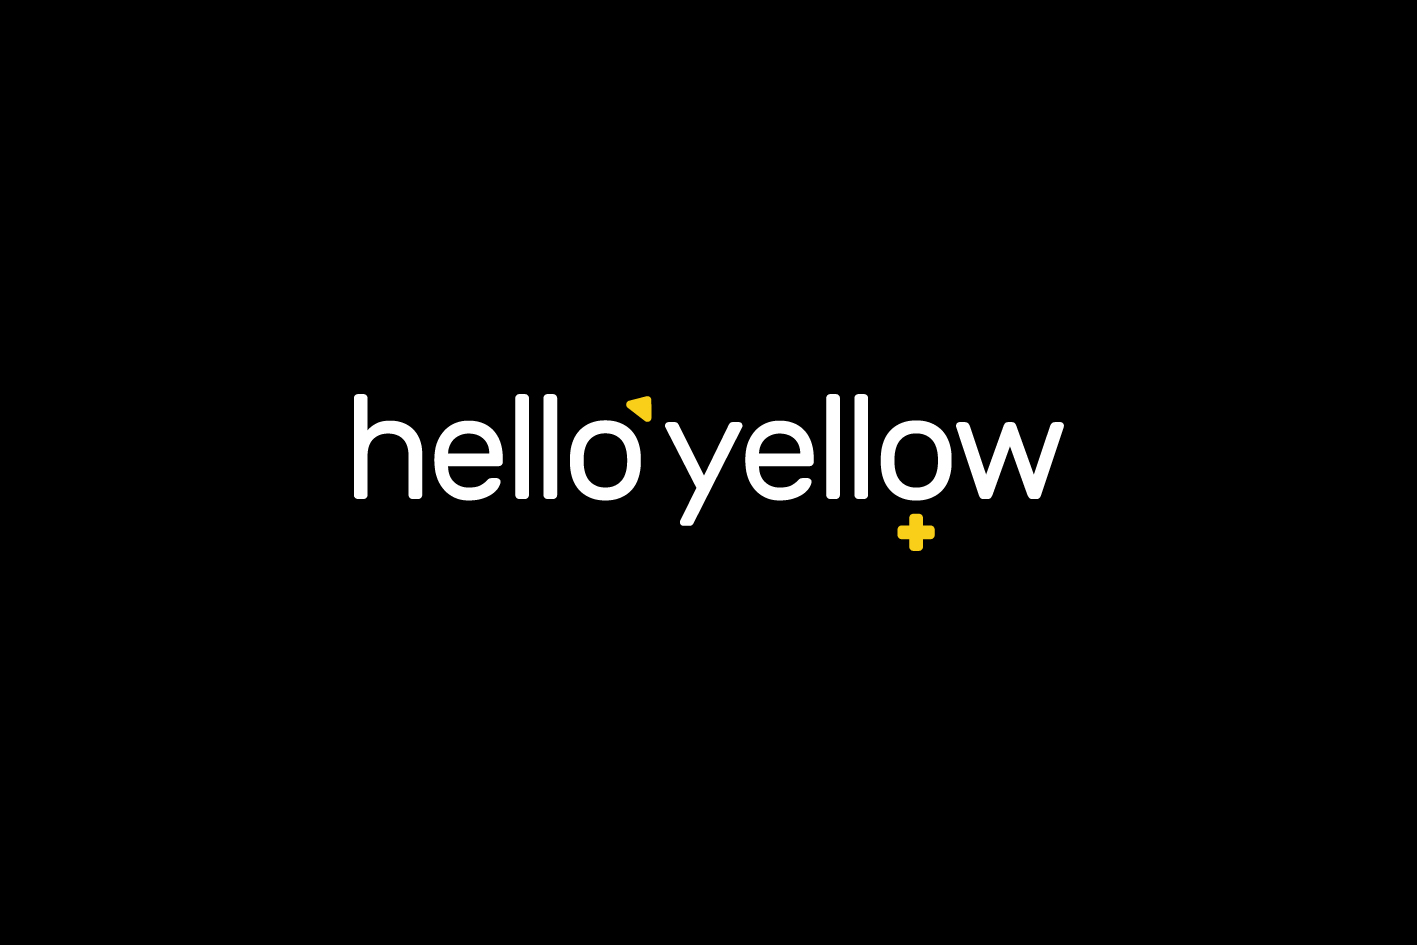 hello yellow identity logo